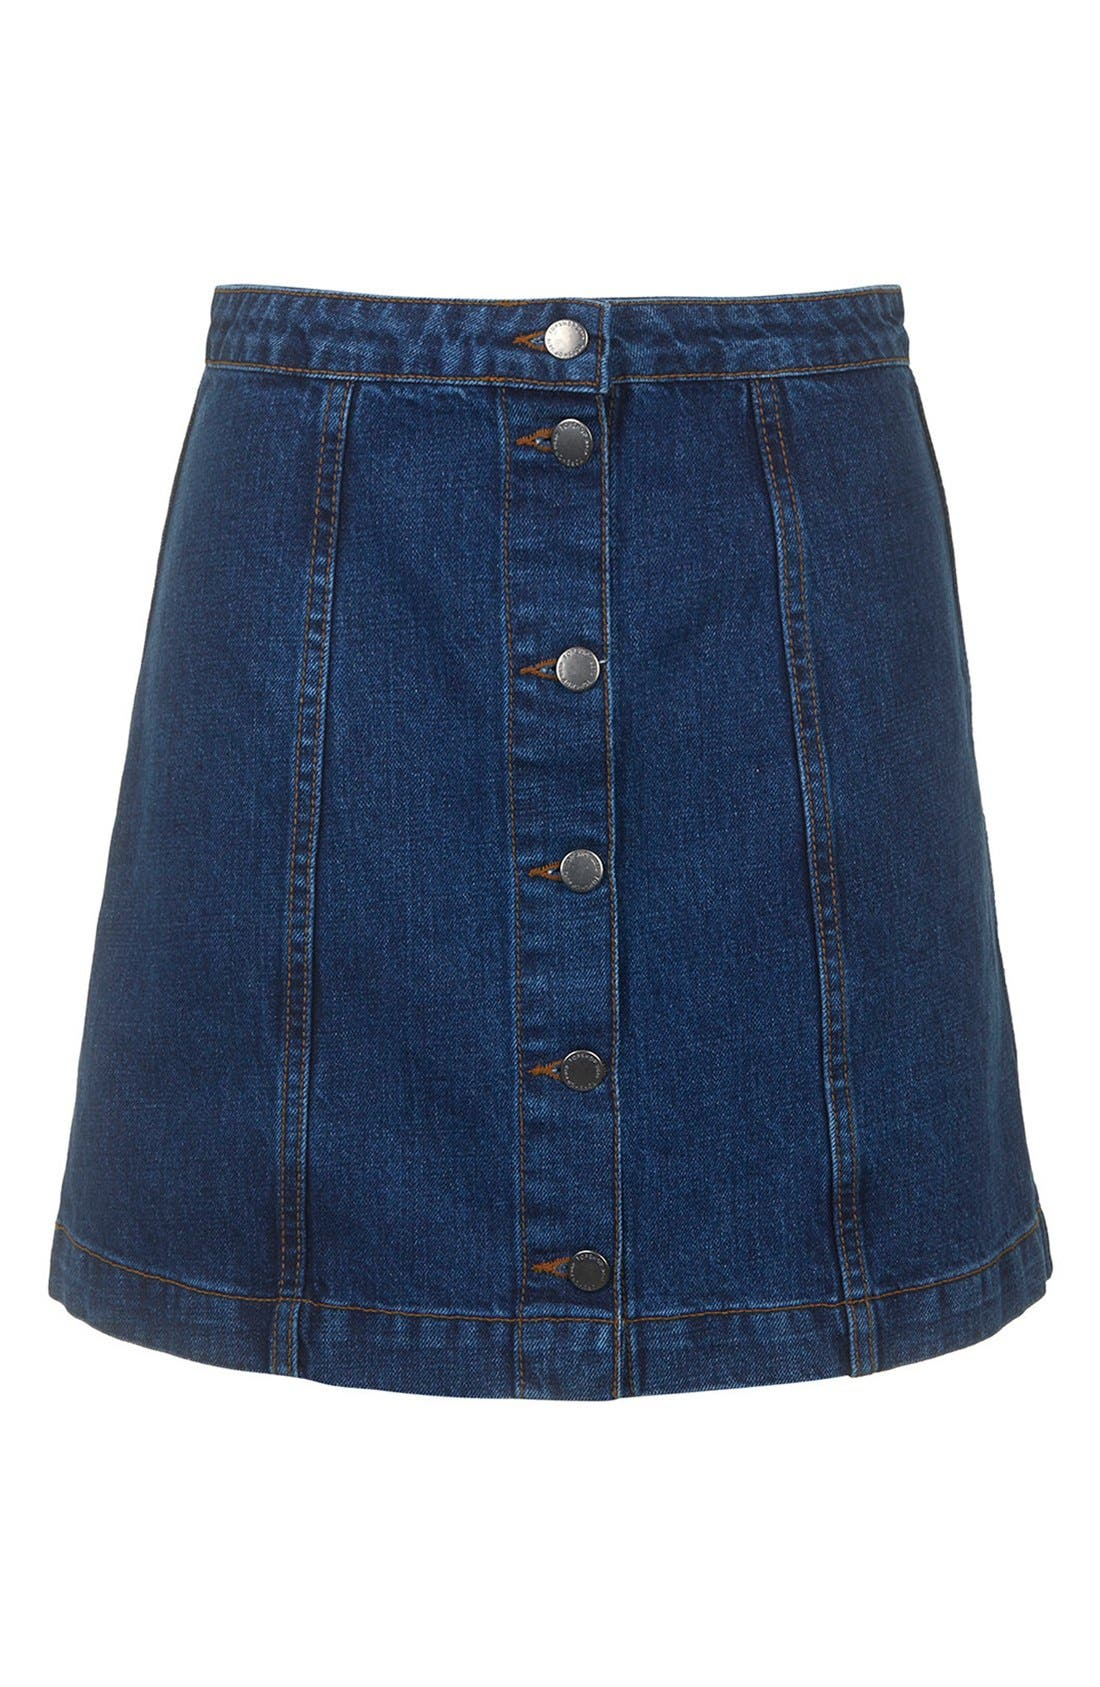 TOPSHOP, Moto Button Front Denim Miniskirt, Alternate thumbnail 4, color, 400